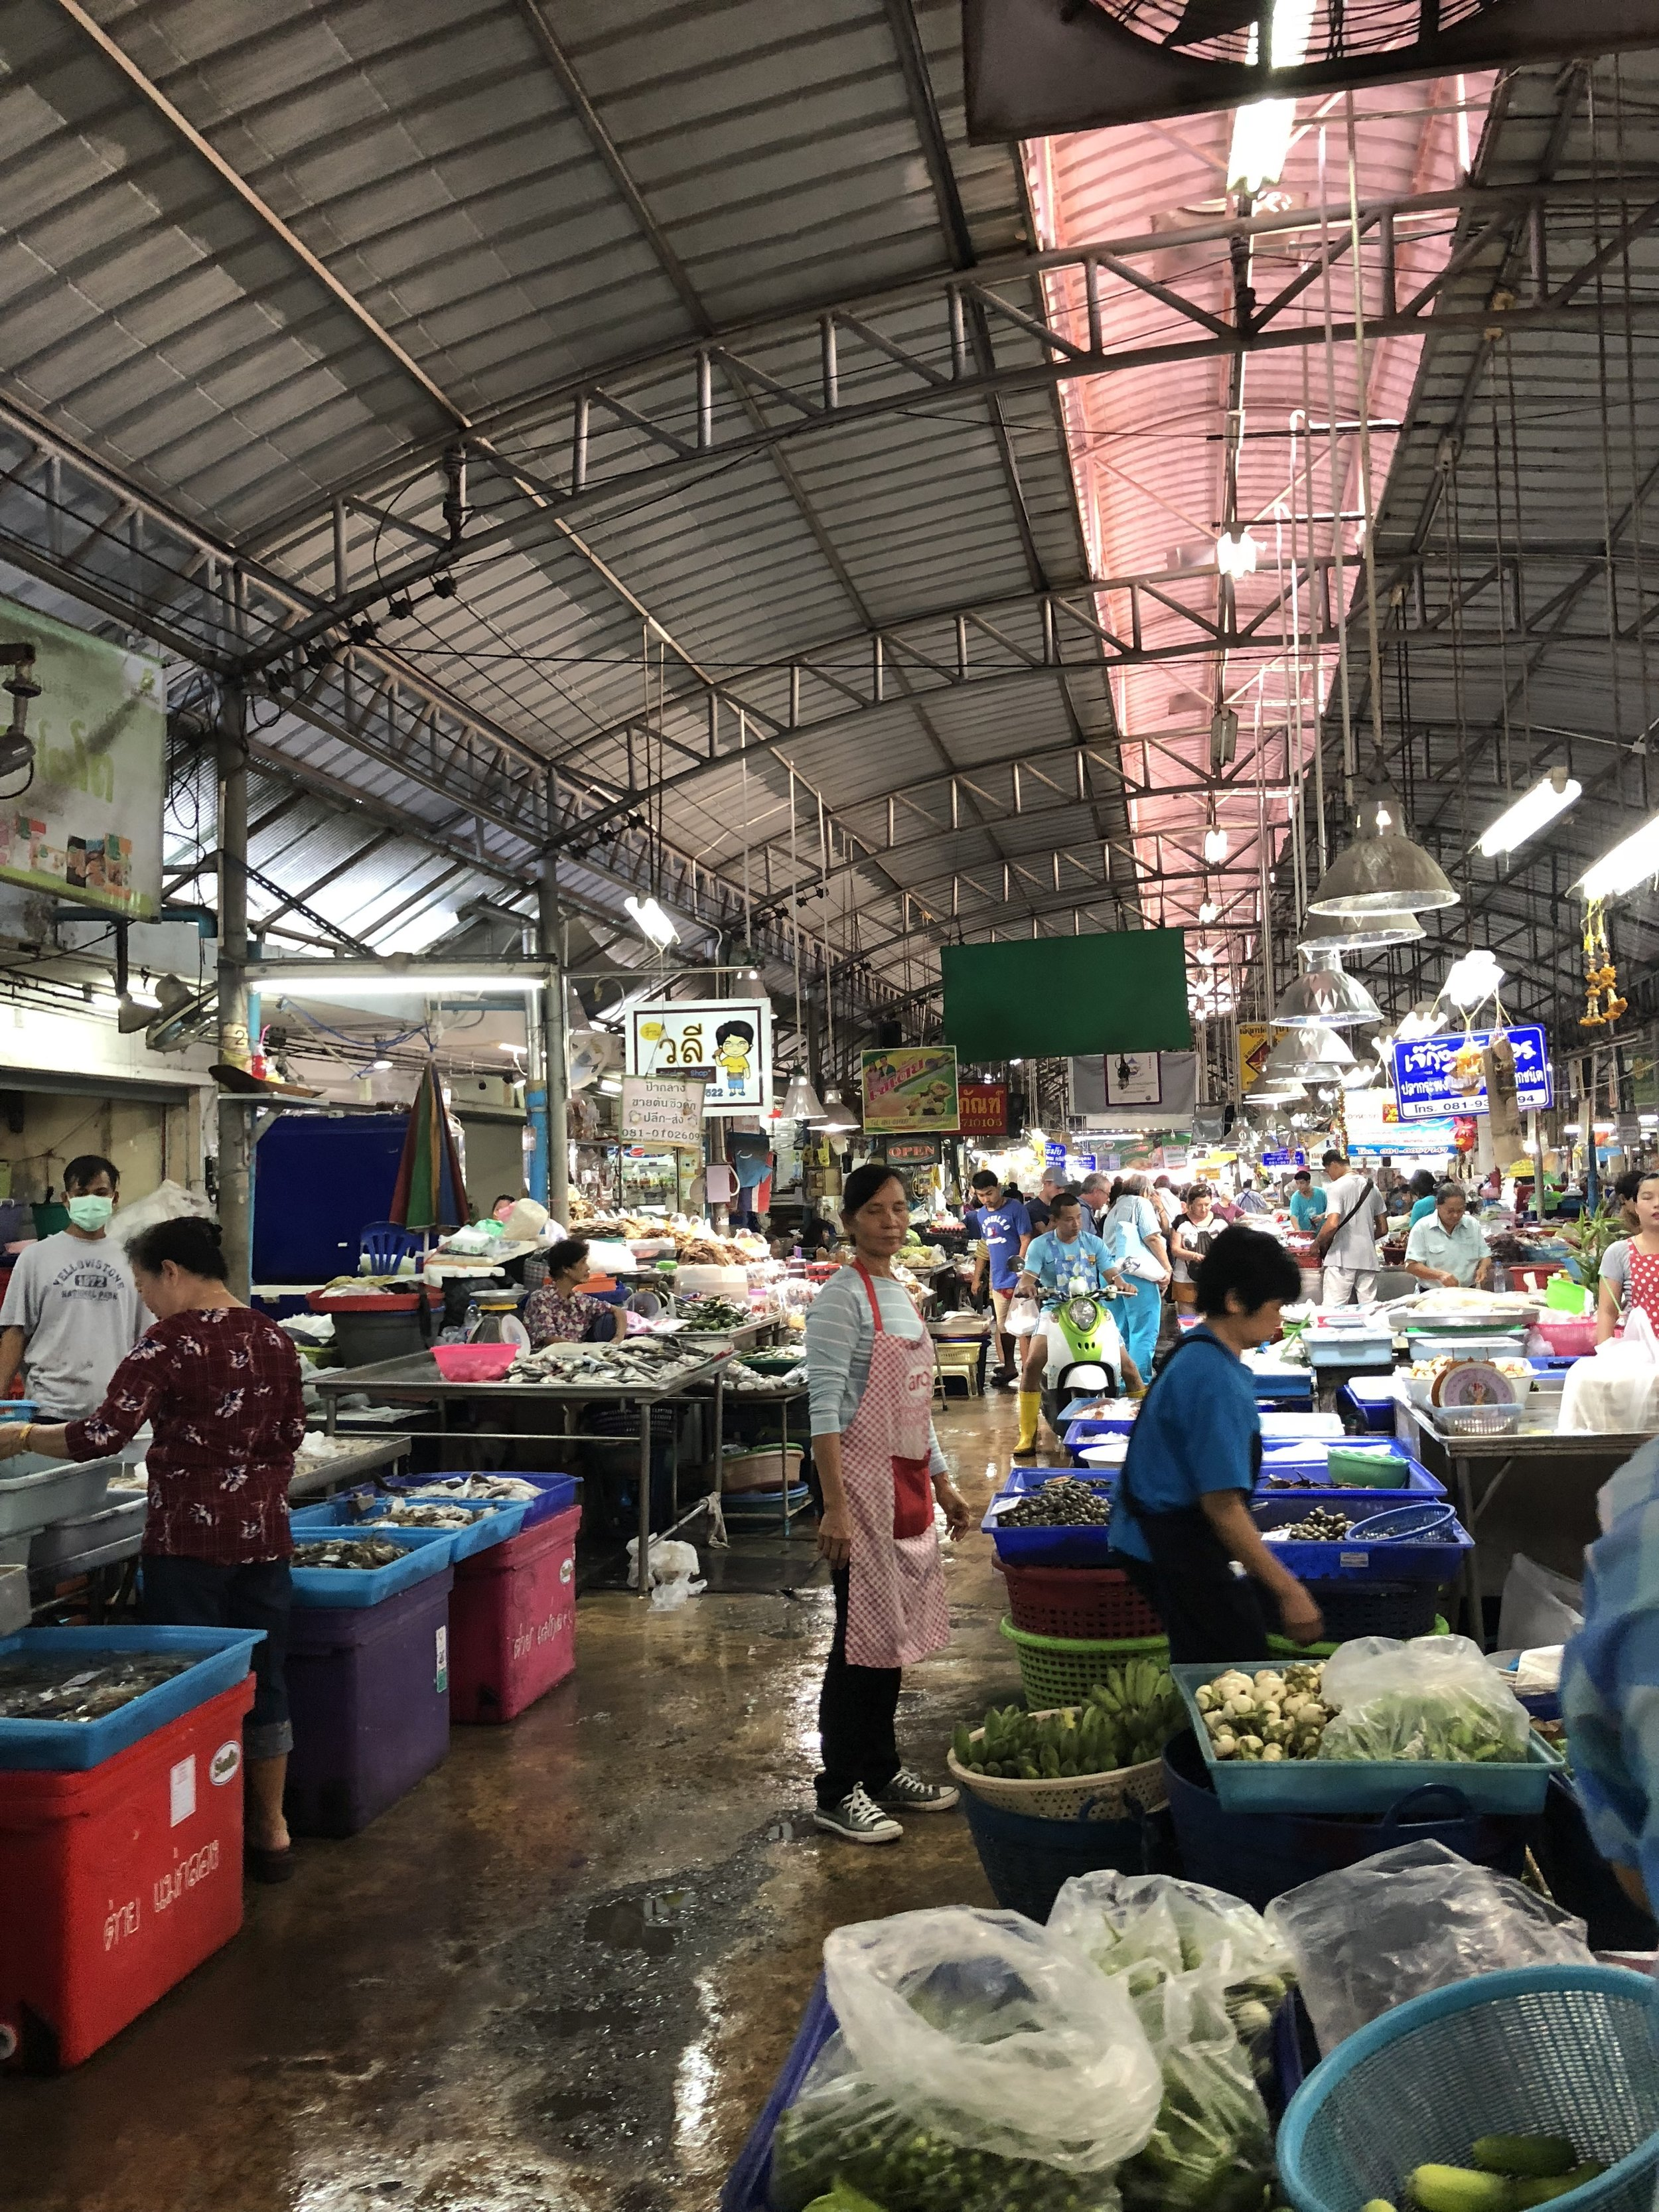 Walking through the part of the market that isn't located on the train tracks.